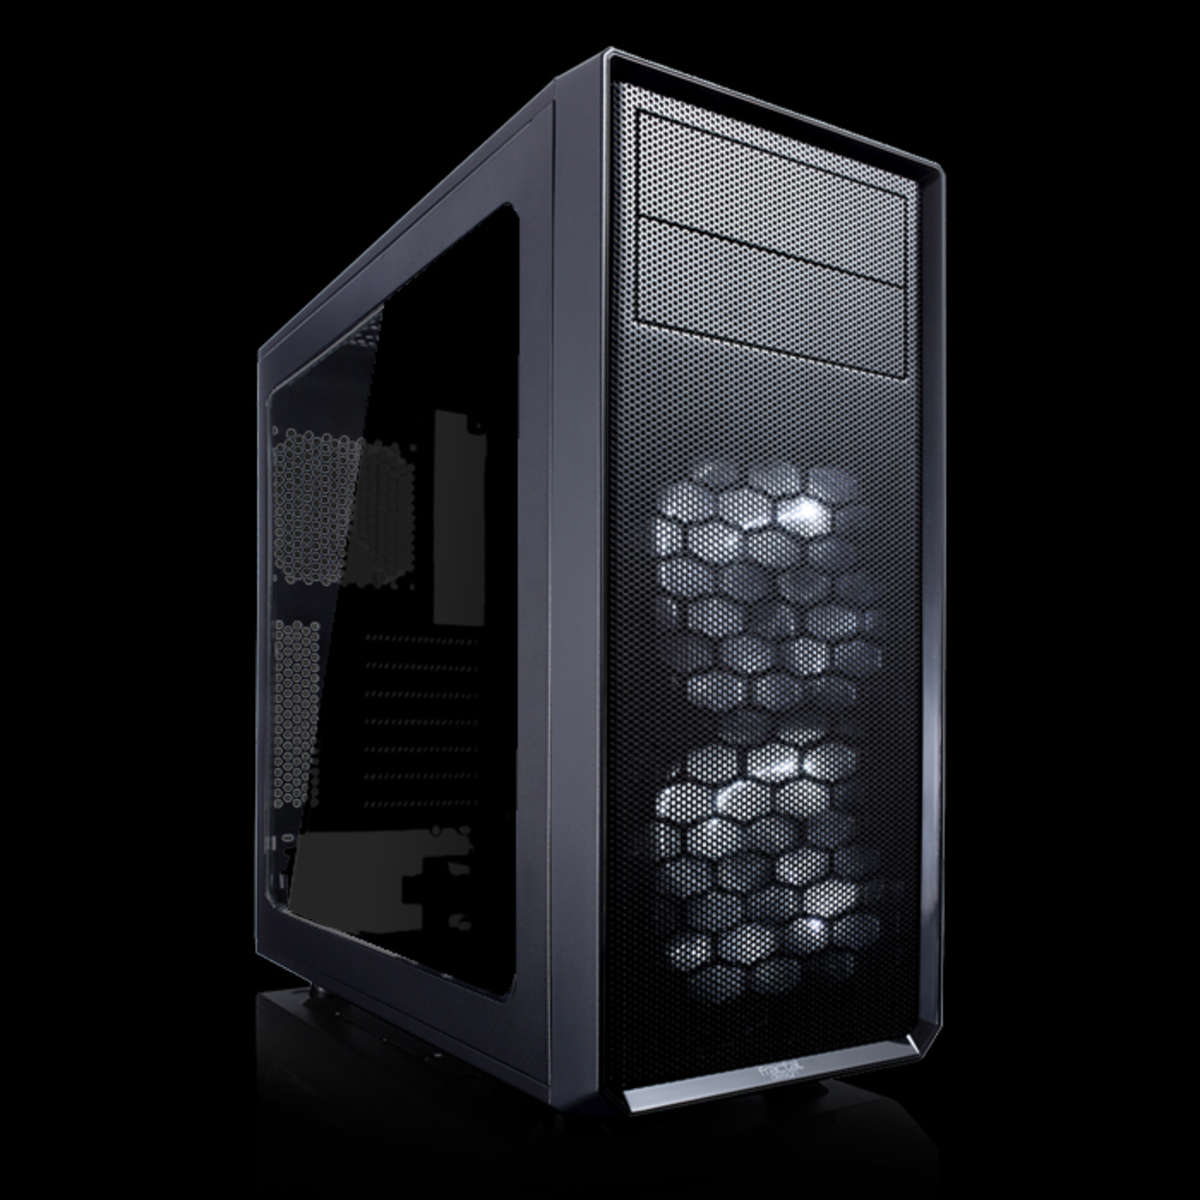 Chillblast Fusion Focus Elite Gaming PC - (Ex-Demo)